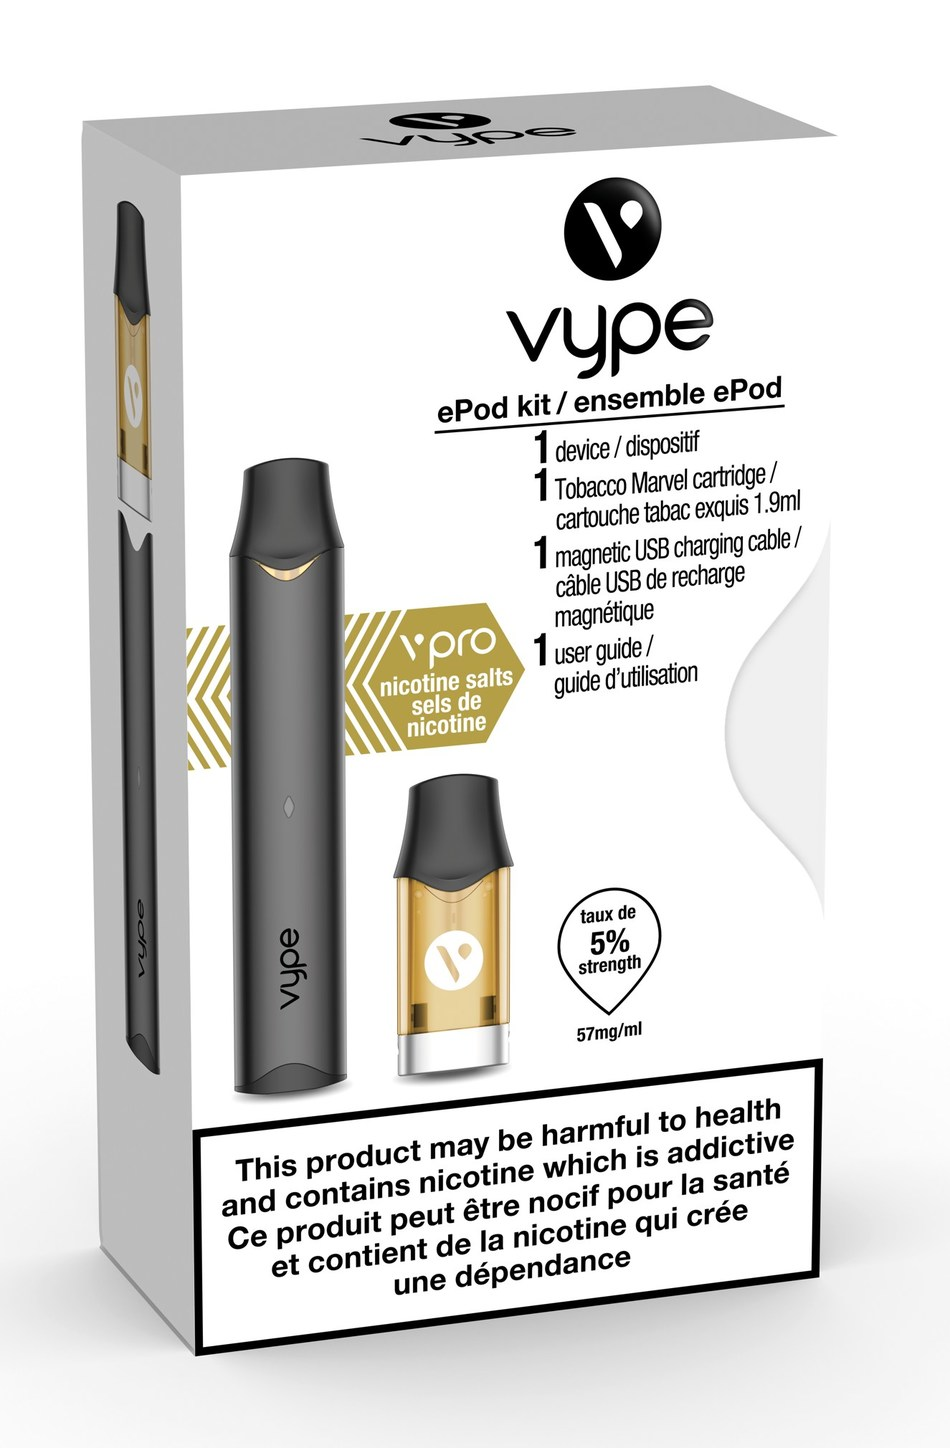 Packaging of the Vype ePod Kit (CNW Group/Imperial Tobacco Canada)